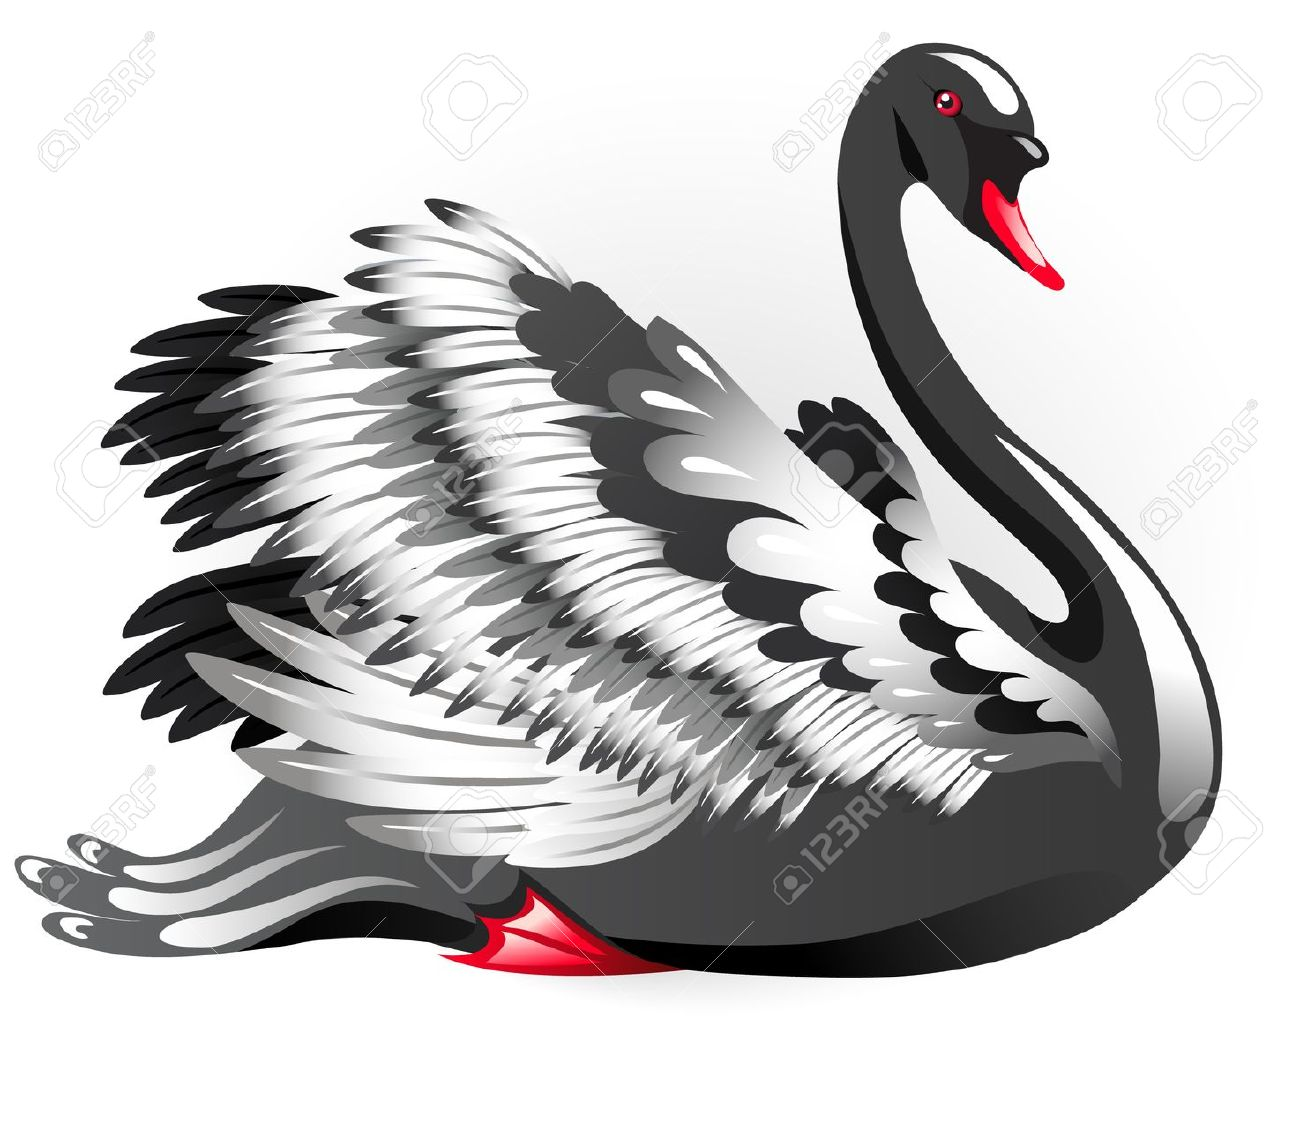 Black Swan clipart #1, Download drawings